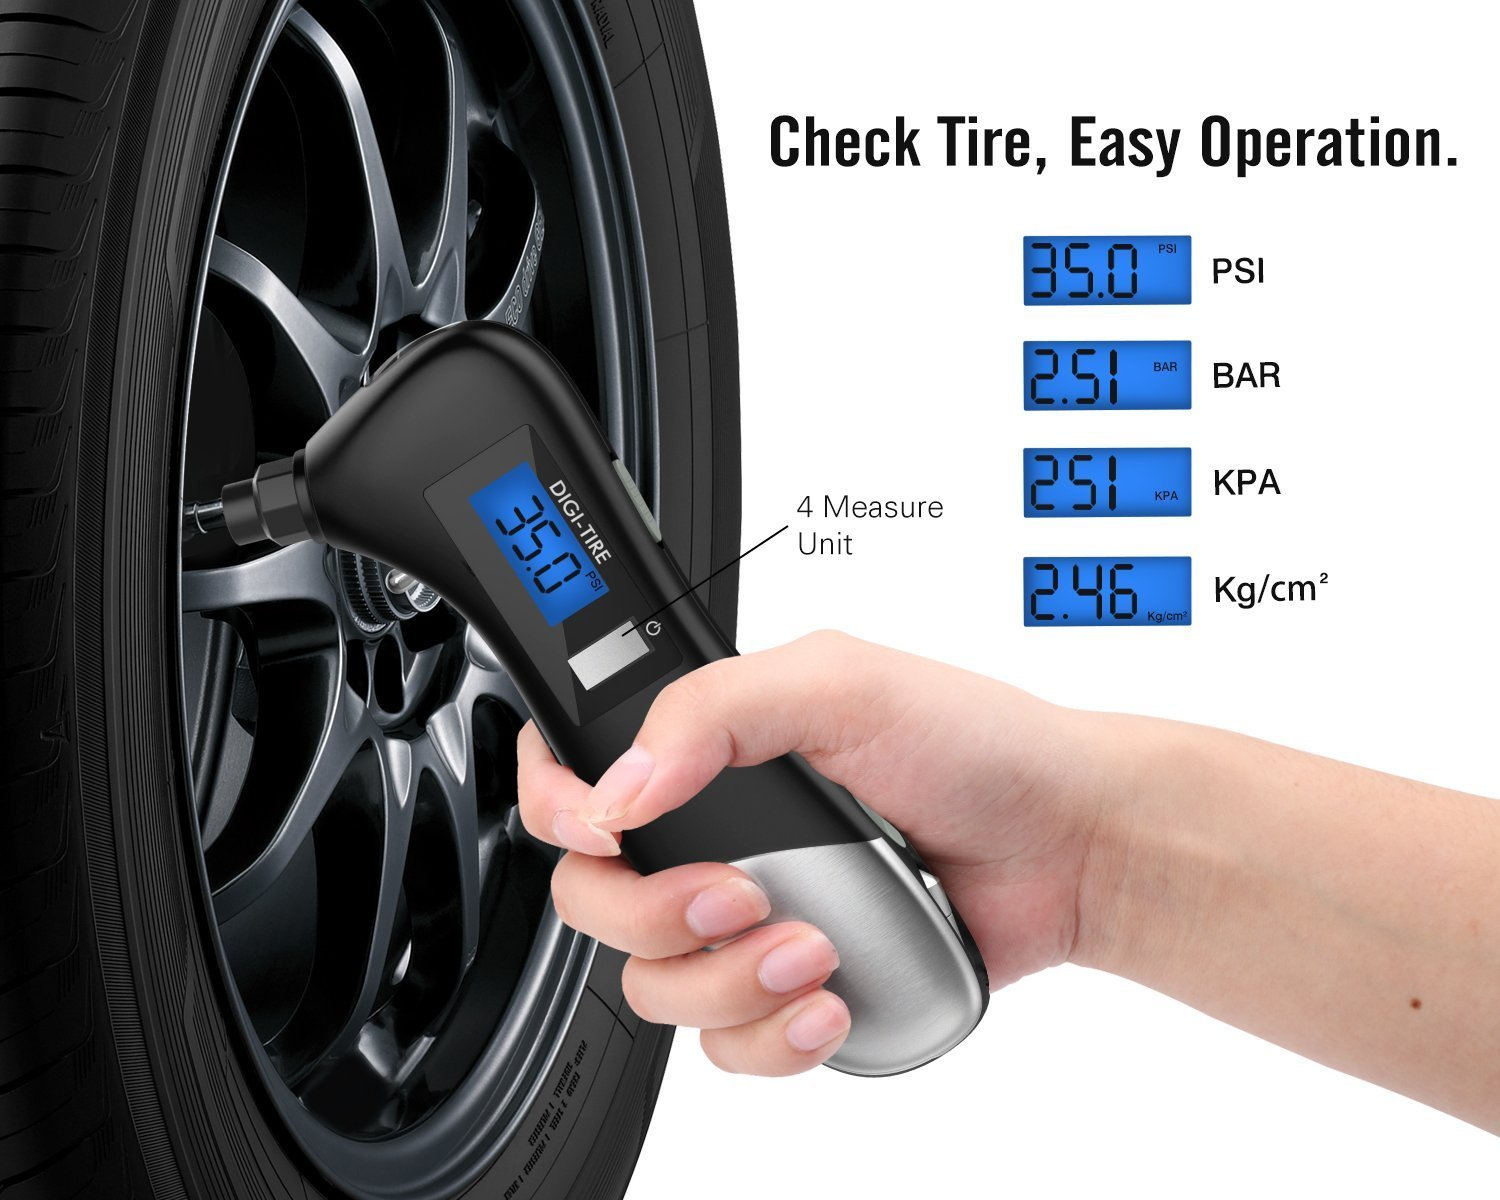 Brightt 9-in-1 Digital Tire Pressure Gauge 150PSI with Multi functional Rescue Tools of LED Flashlight, Car Hammer, Seatbelt Cutter, Screw Drivers, Scissors and Pliers for Car, All Vehicles by Brightt (Image #8)